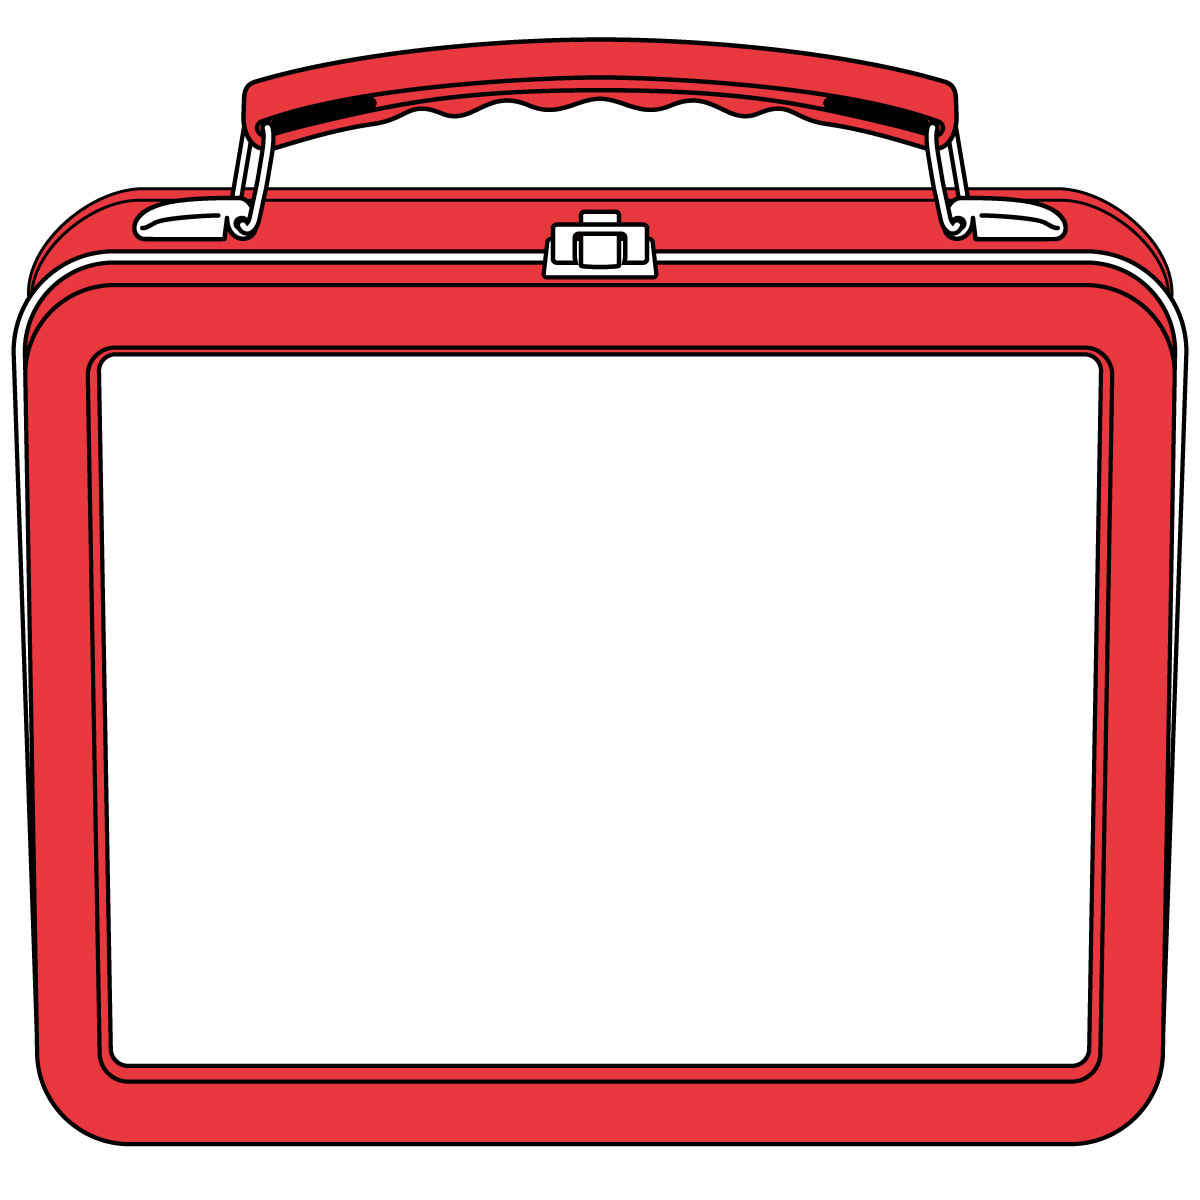 1200x1200 Free Lunch Box Clipart Image